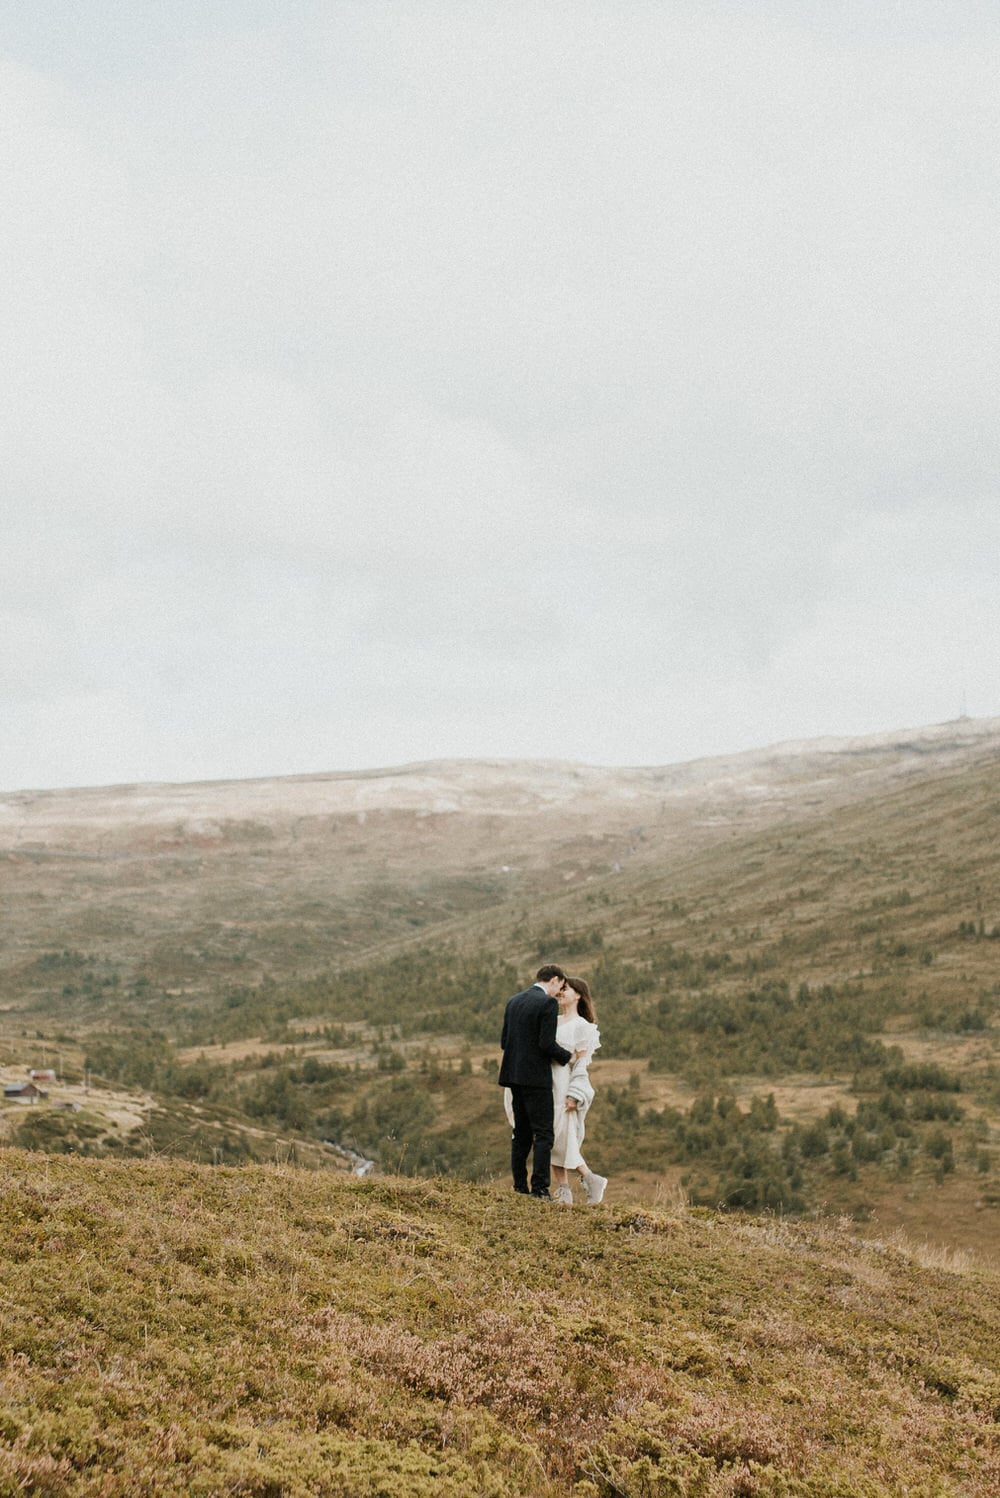 adventurous destination wedding in Europe - elopement photographer Emily Kidd Photo